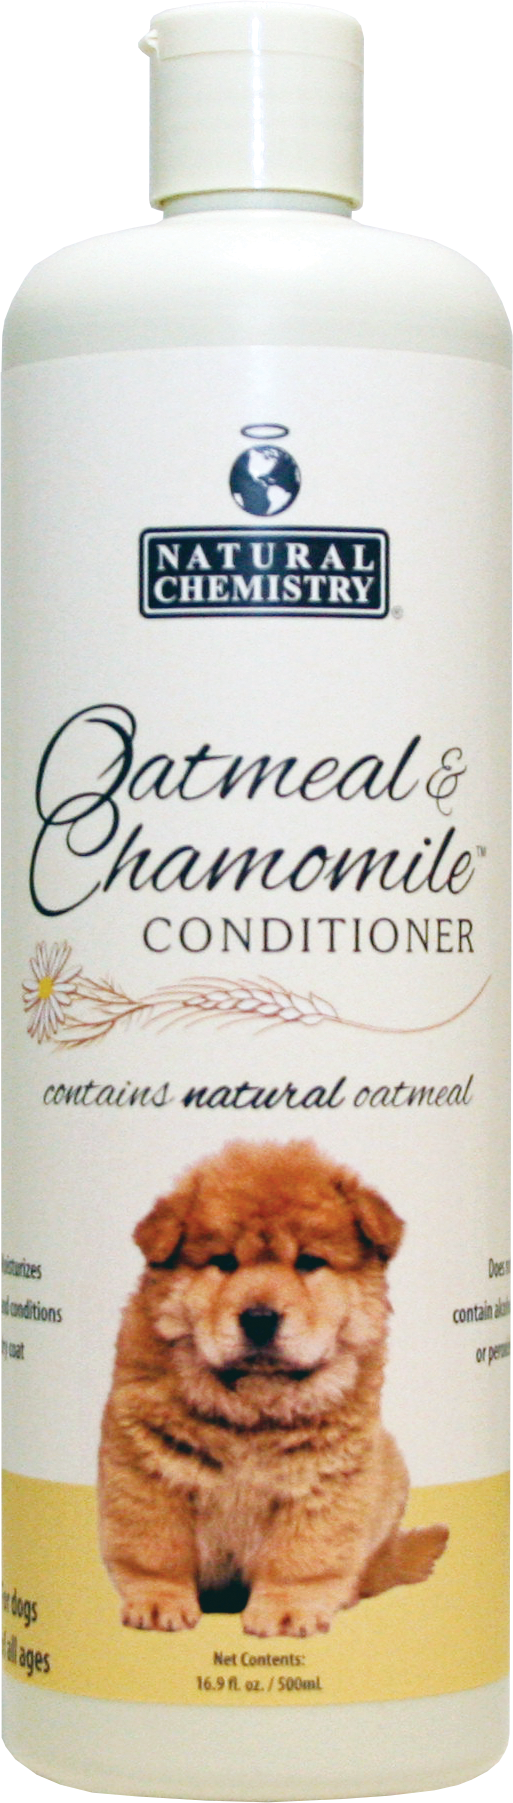 11101 Oatmeal & Chamomile Conditioner.png